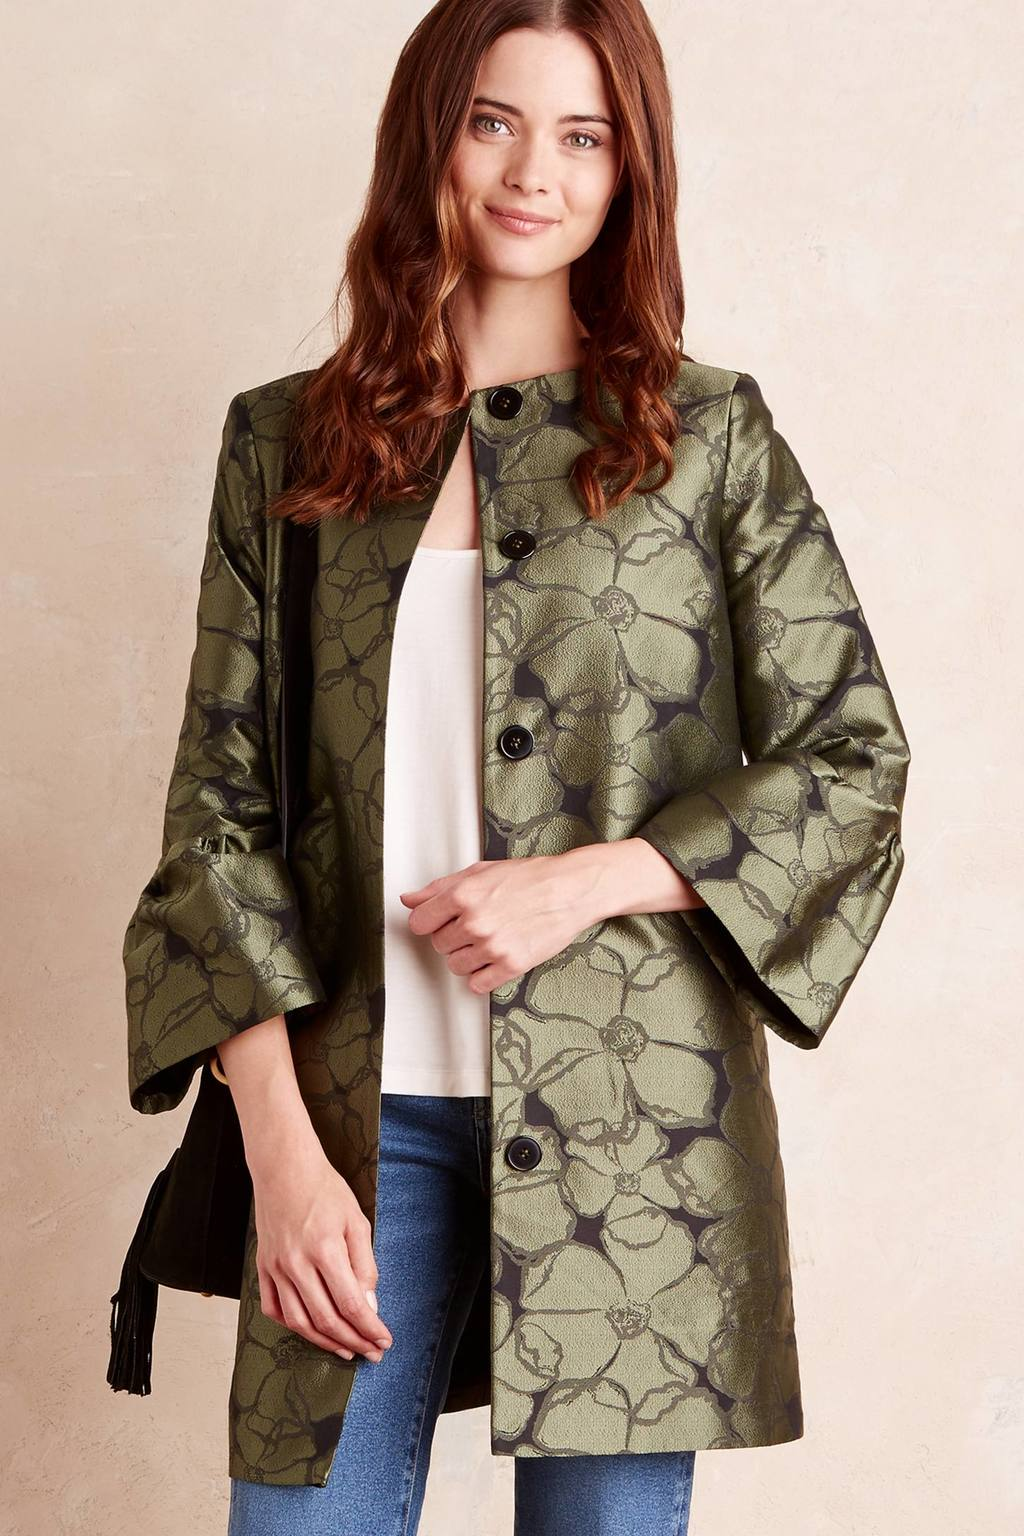 Etienne Floral Coat, Green - sleeve style: bell sleeve; length: below the bottom; collar: round collar/collarless; style: single breasted; fit: slim fit; predominant colour: gold; occasions: evening; fibres: polyester/polyamide - 100%; sleeve length: long sleeve; texture group: structured shiny - satin/tafetta/silk etc.; collar break: high; pattern type: fabric; pattern: florals; season: a/w 2016; wardrobe: event